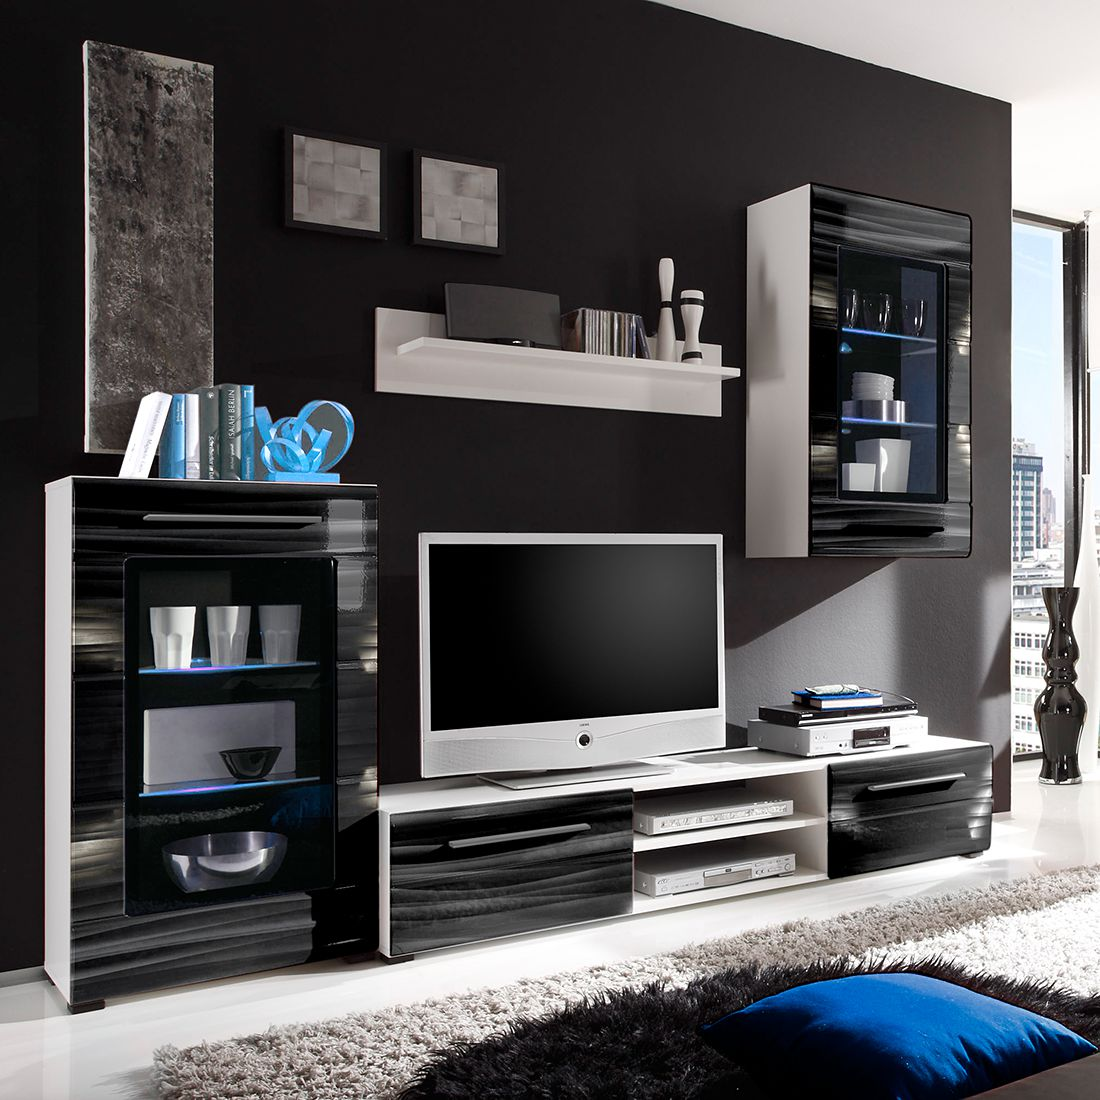 wohnwand weiss schwarz preisvergleich die besten angebote online kaufen. Black Bedroom Furniture Sets. Home Design Ideas